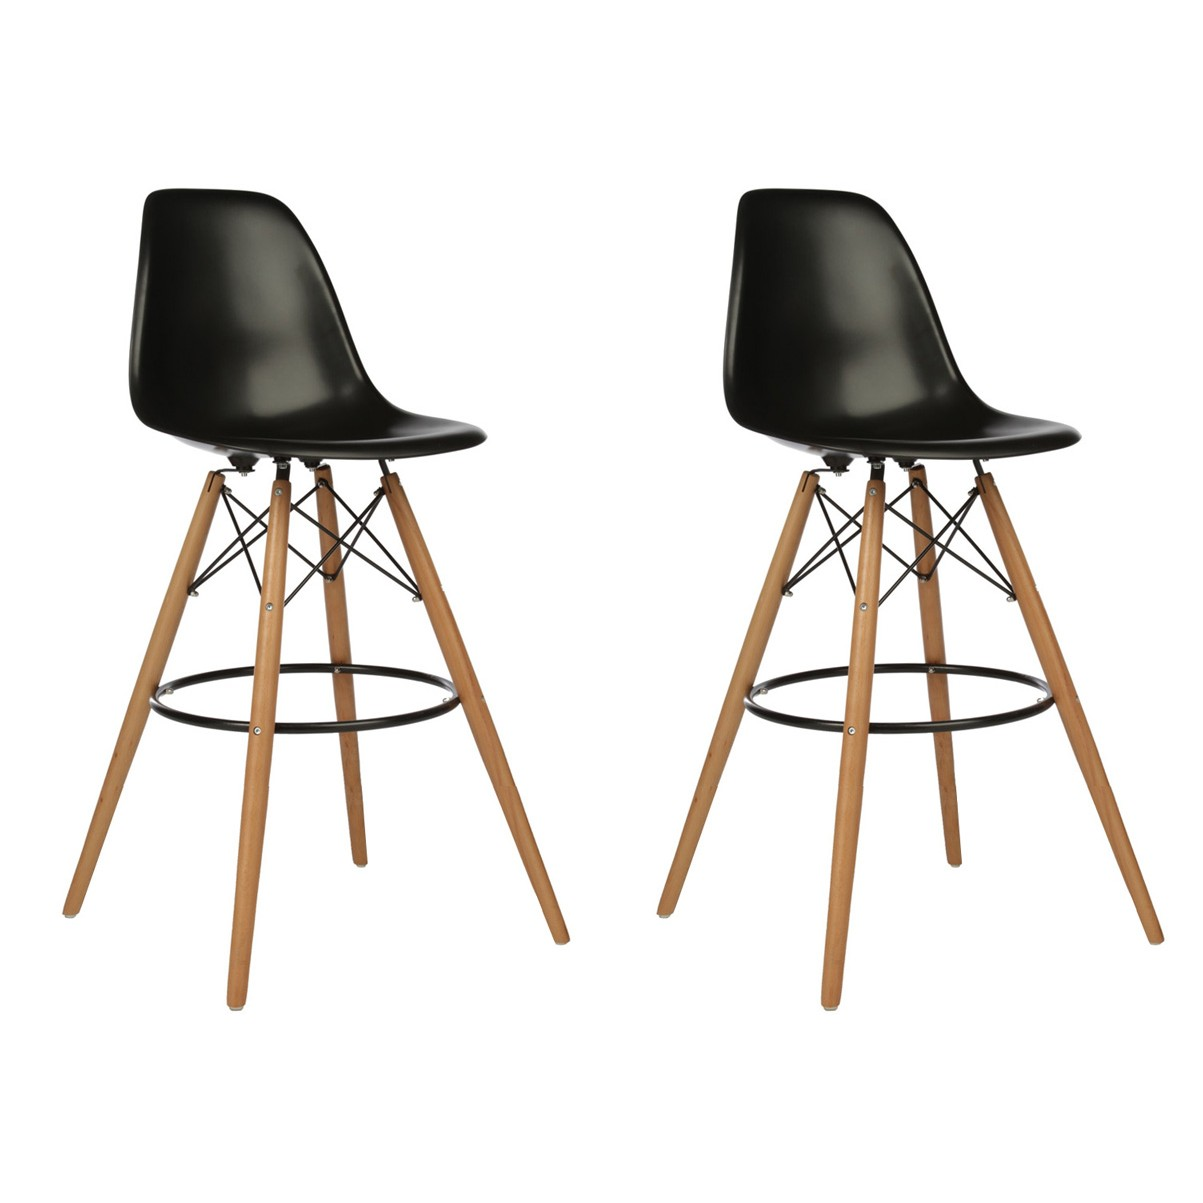 Display Gallery Item 1 ...  sc 1 st  eModernDecor & Set of 2 Eames Style DSW Black Plastic 30 Inch Bar Stool with Wood ... islam-shia.org